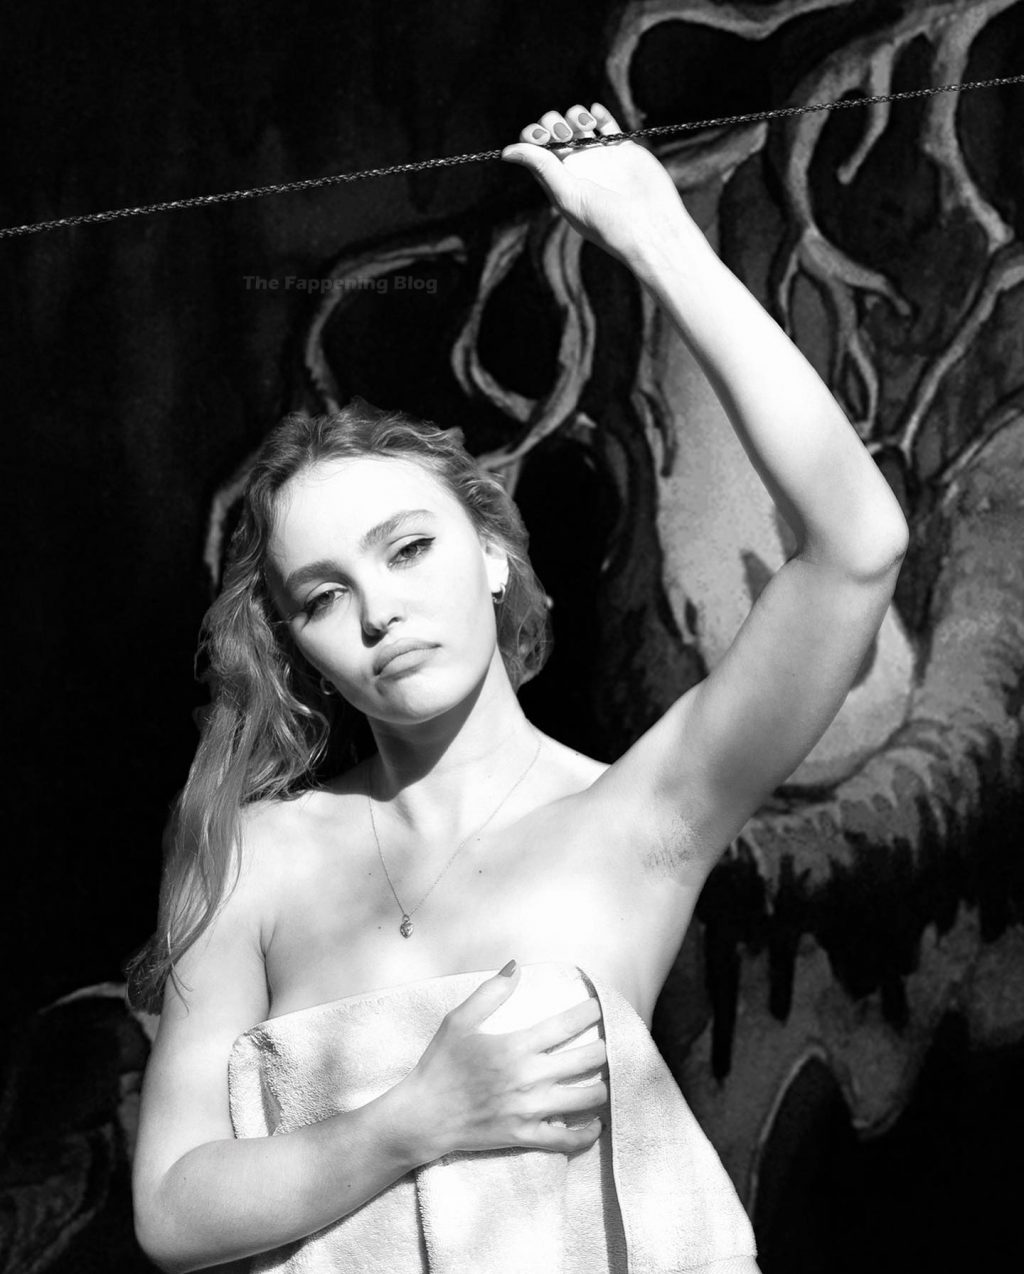 Lily-Rose Depp Poses Topless (4 Photos)